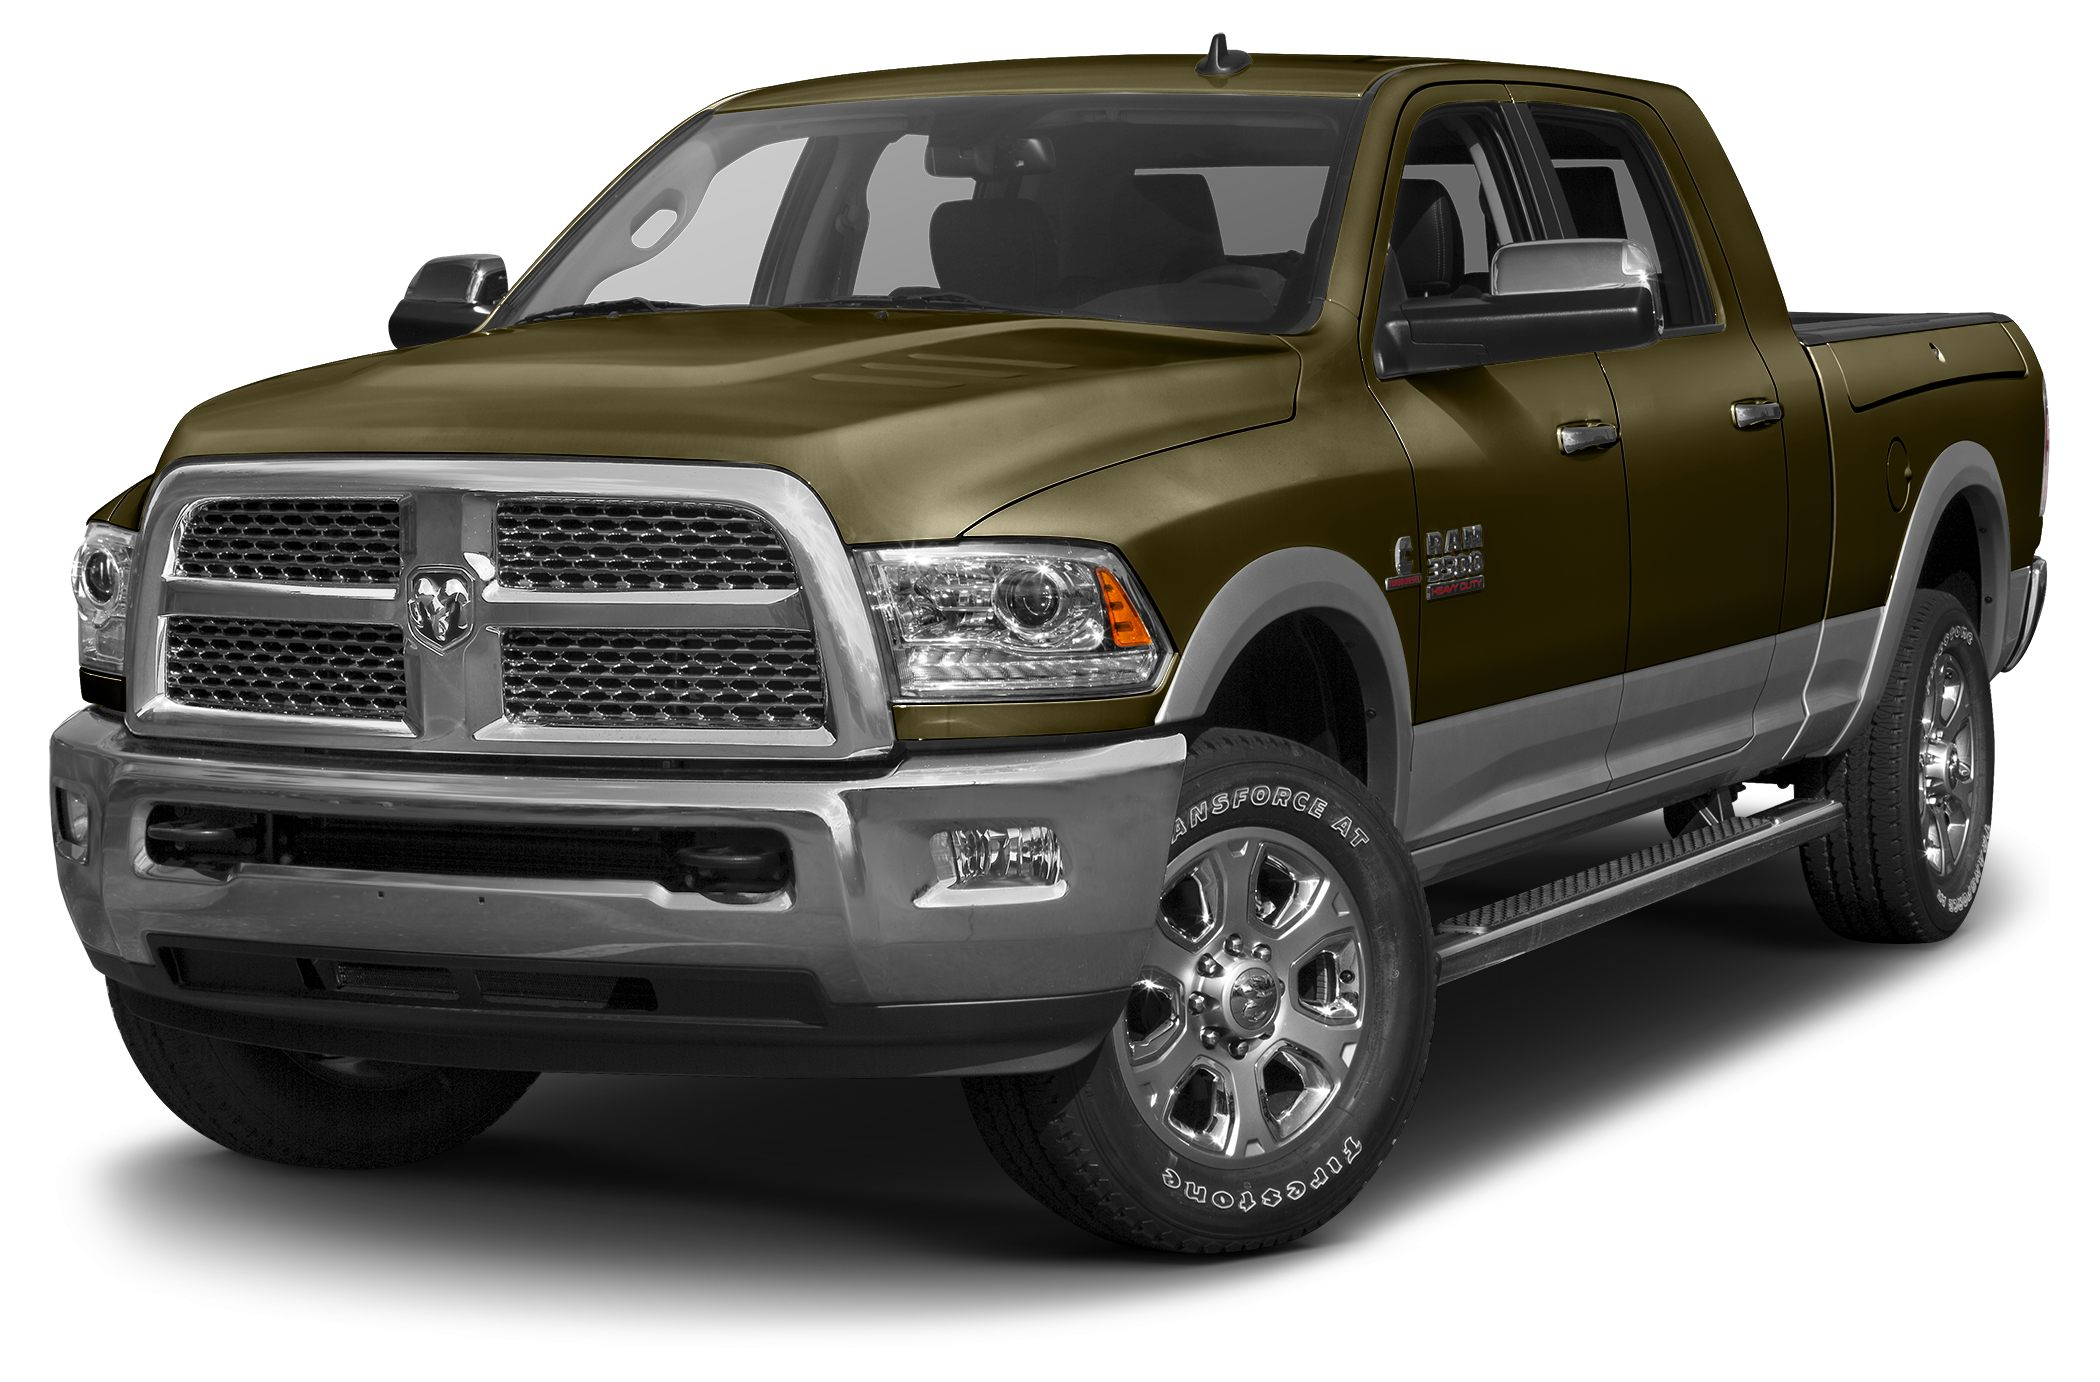 2016 RAM 3500 Laramie Miles 0Color Black Forest Green Pearlcoat Stock 345724 VIN 3C63RPML4GG